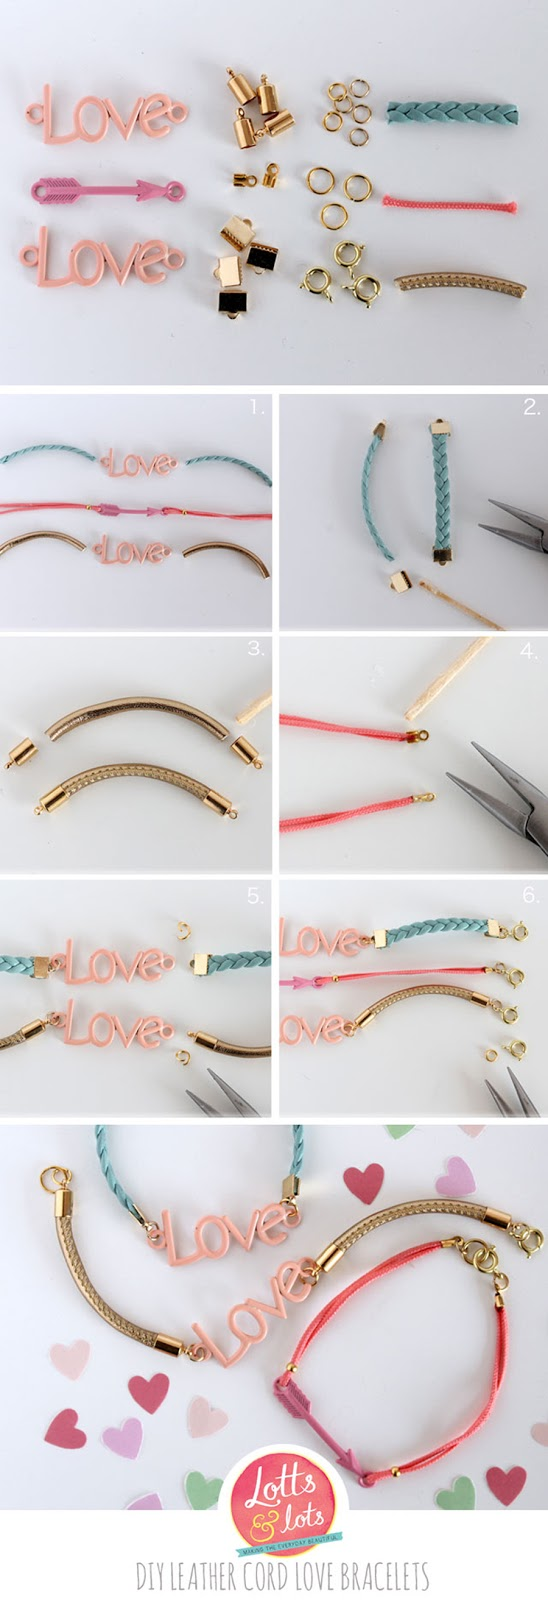 diy leather cord love bracelet lotts and lots making